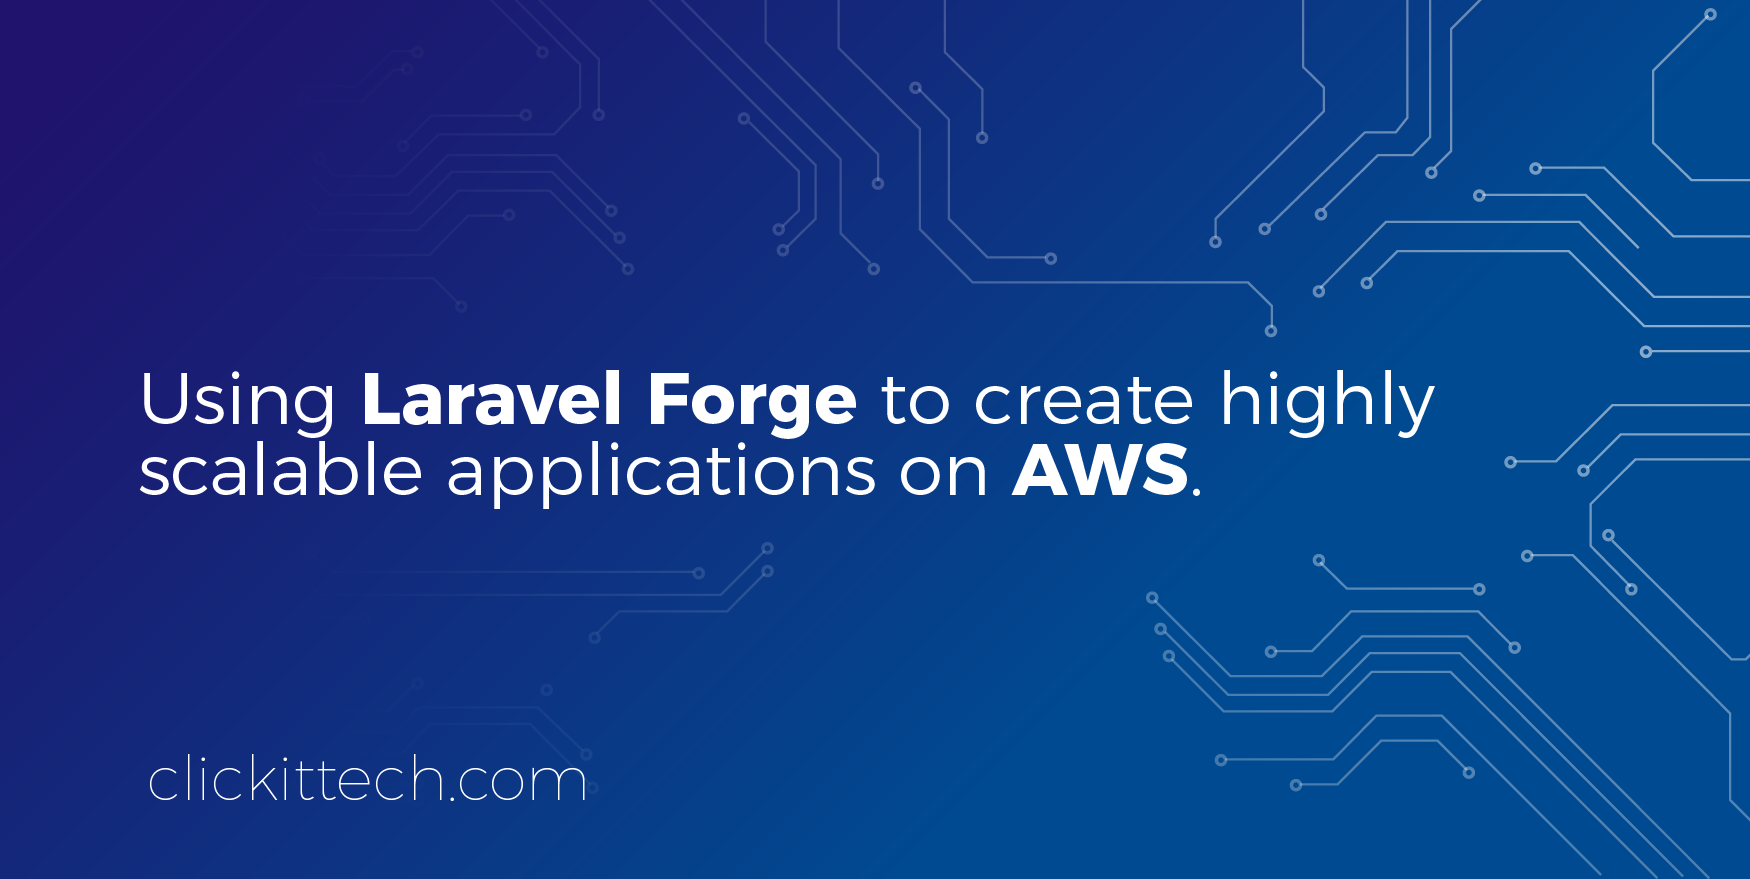 laravel forge on AWS